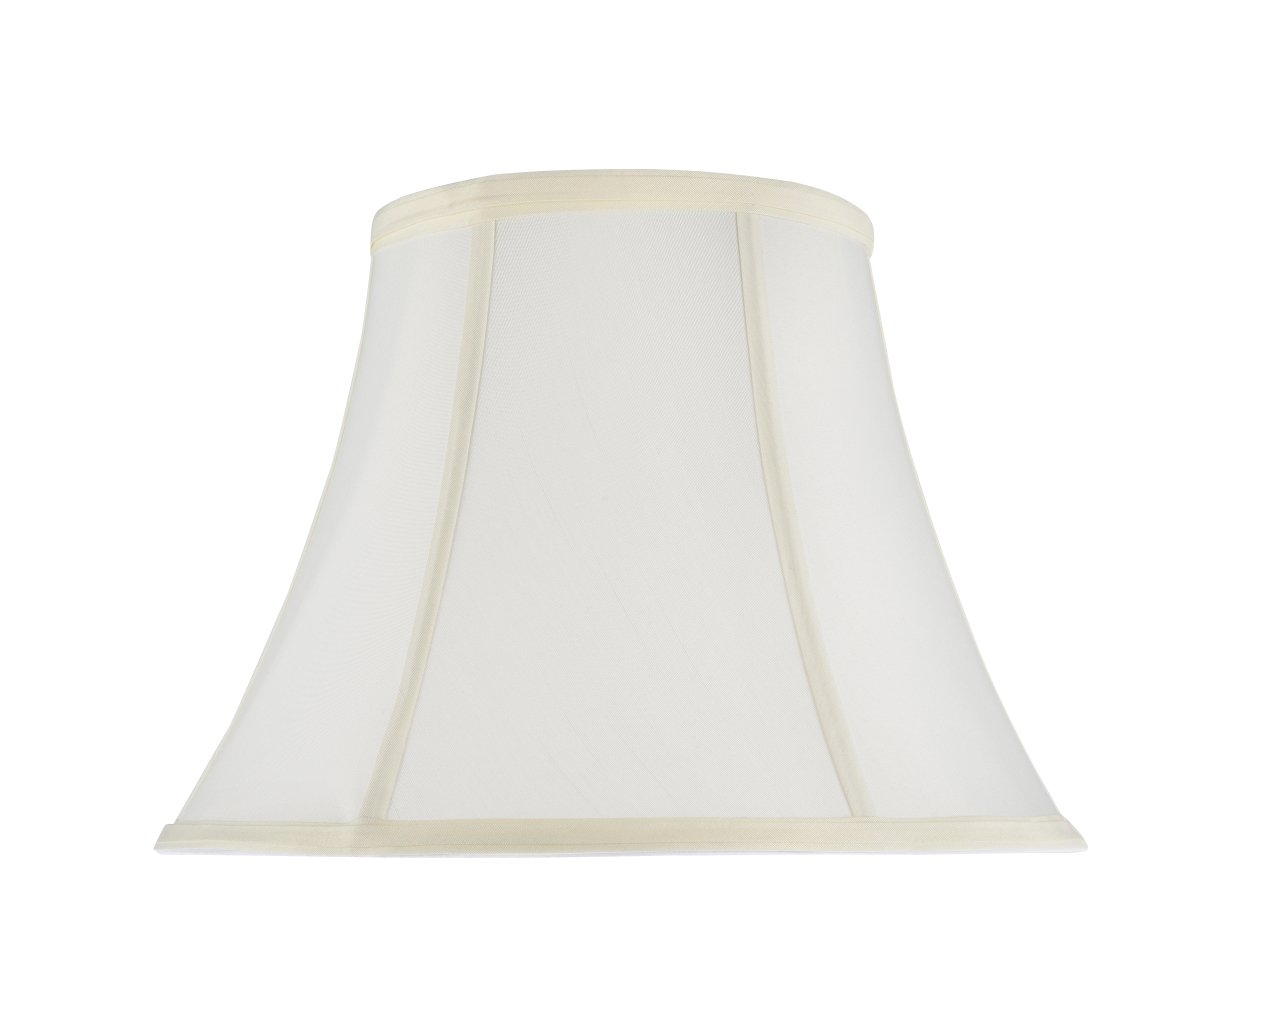 "Aspen Creative 30216 Transitional Bell Shaped Spider Construction Lamp Shade in Off-White, 13"" Wide (7"" x 13"" x 9 1/2"")"